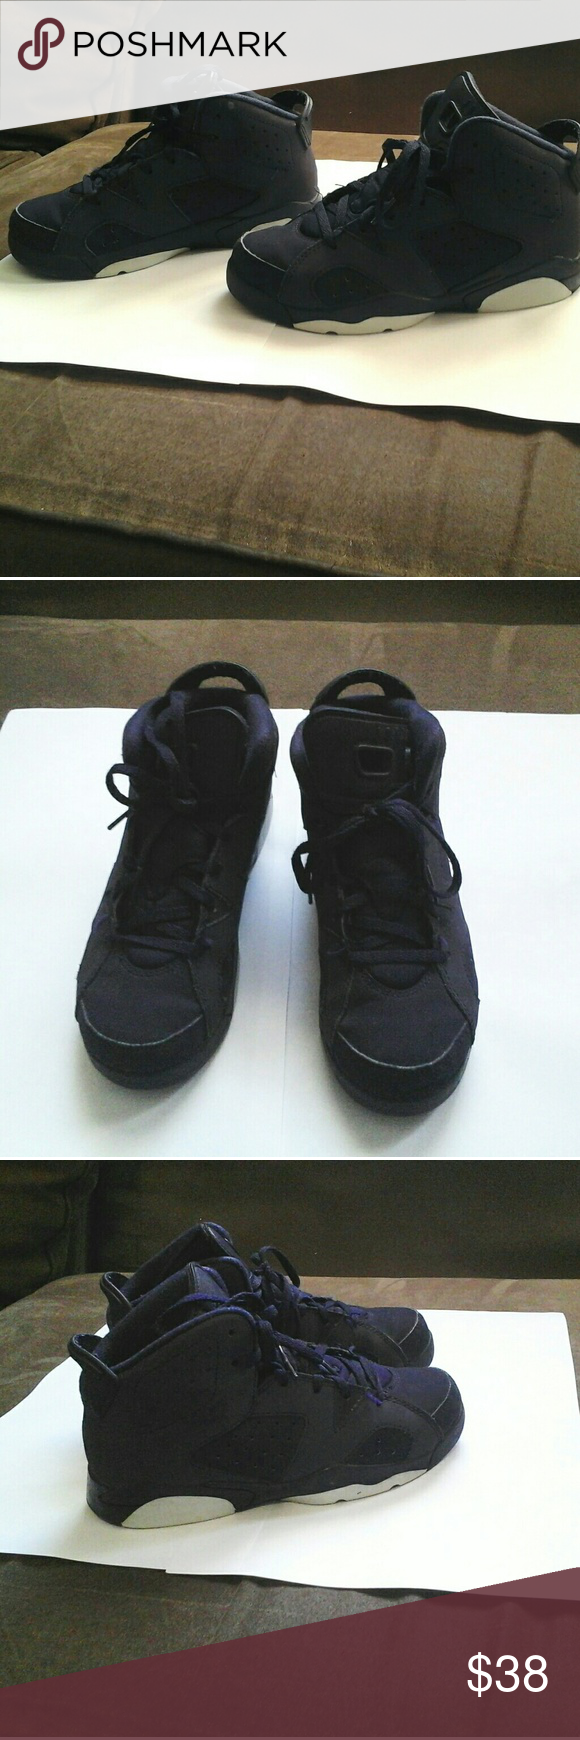 9e8bdcb6bed5ca Nike Air Jordan Retro 6 Purple Dynasty Sneakers I have a pre-owned Retro 6  Jordan purple Dynasty   Violet youth size 2 sneakers. It has a bit of  normal wear ...